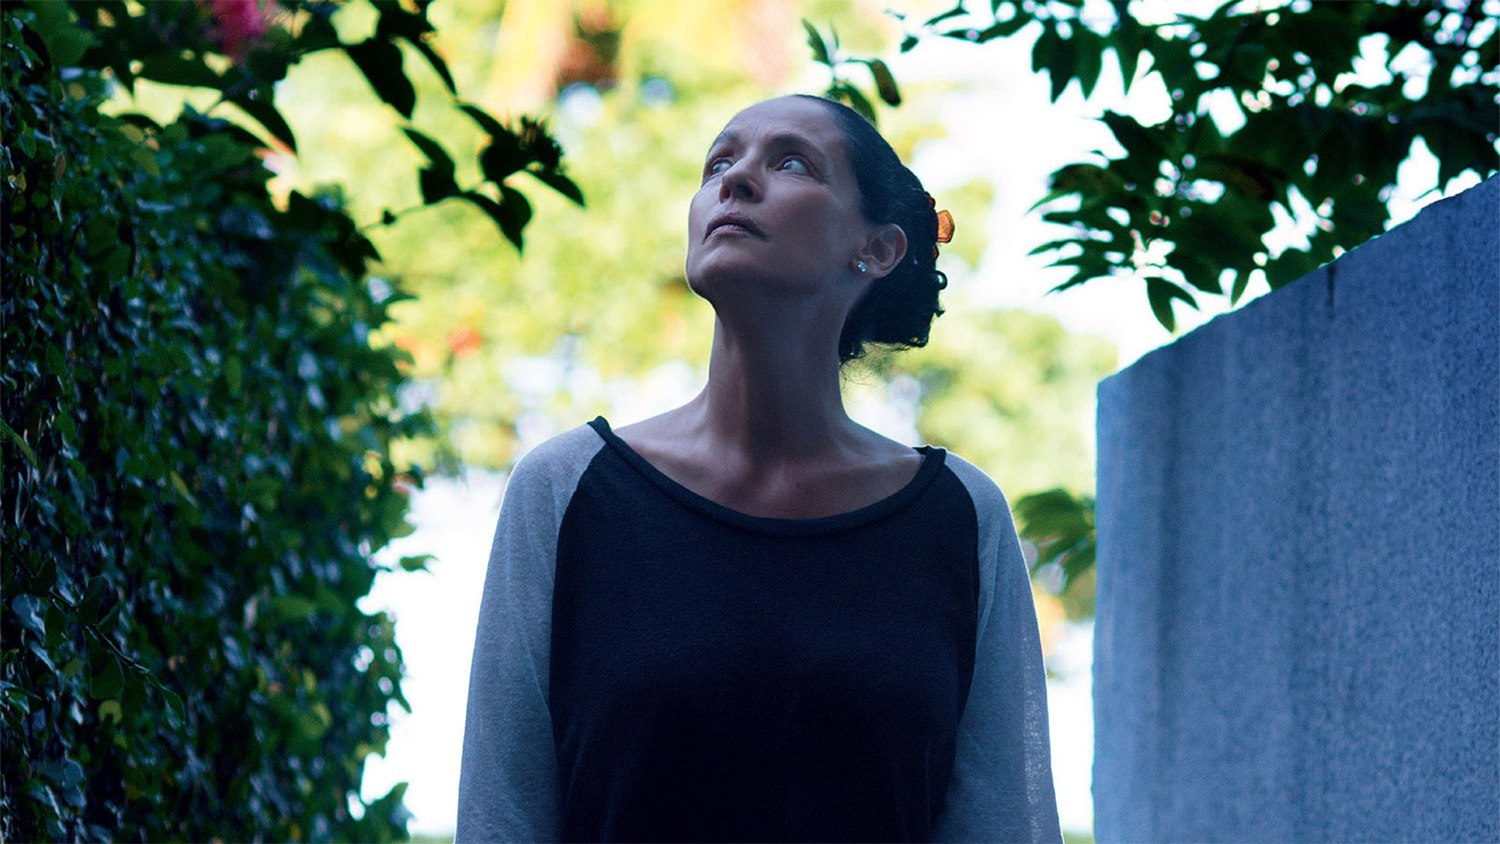 sonia braga in movie Aquarius